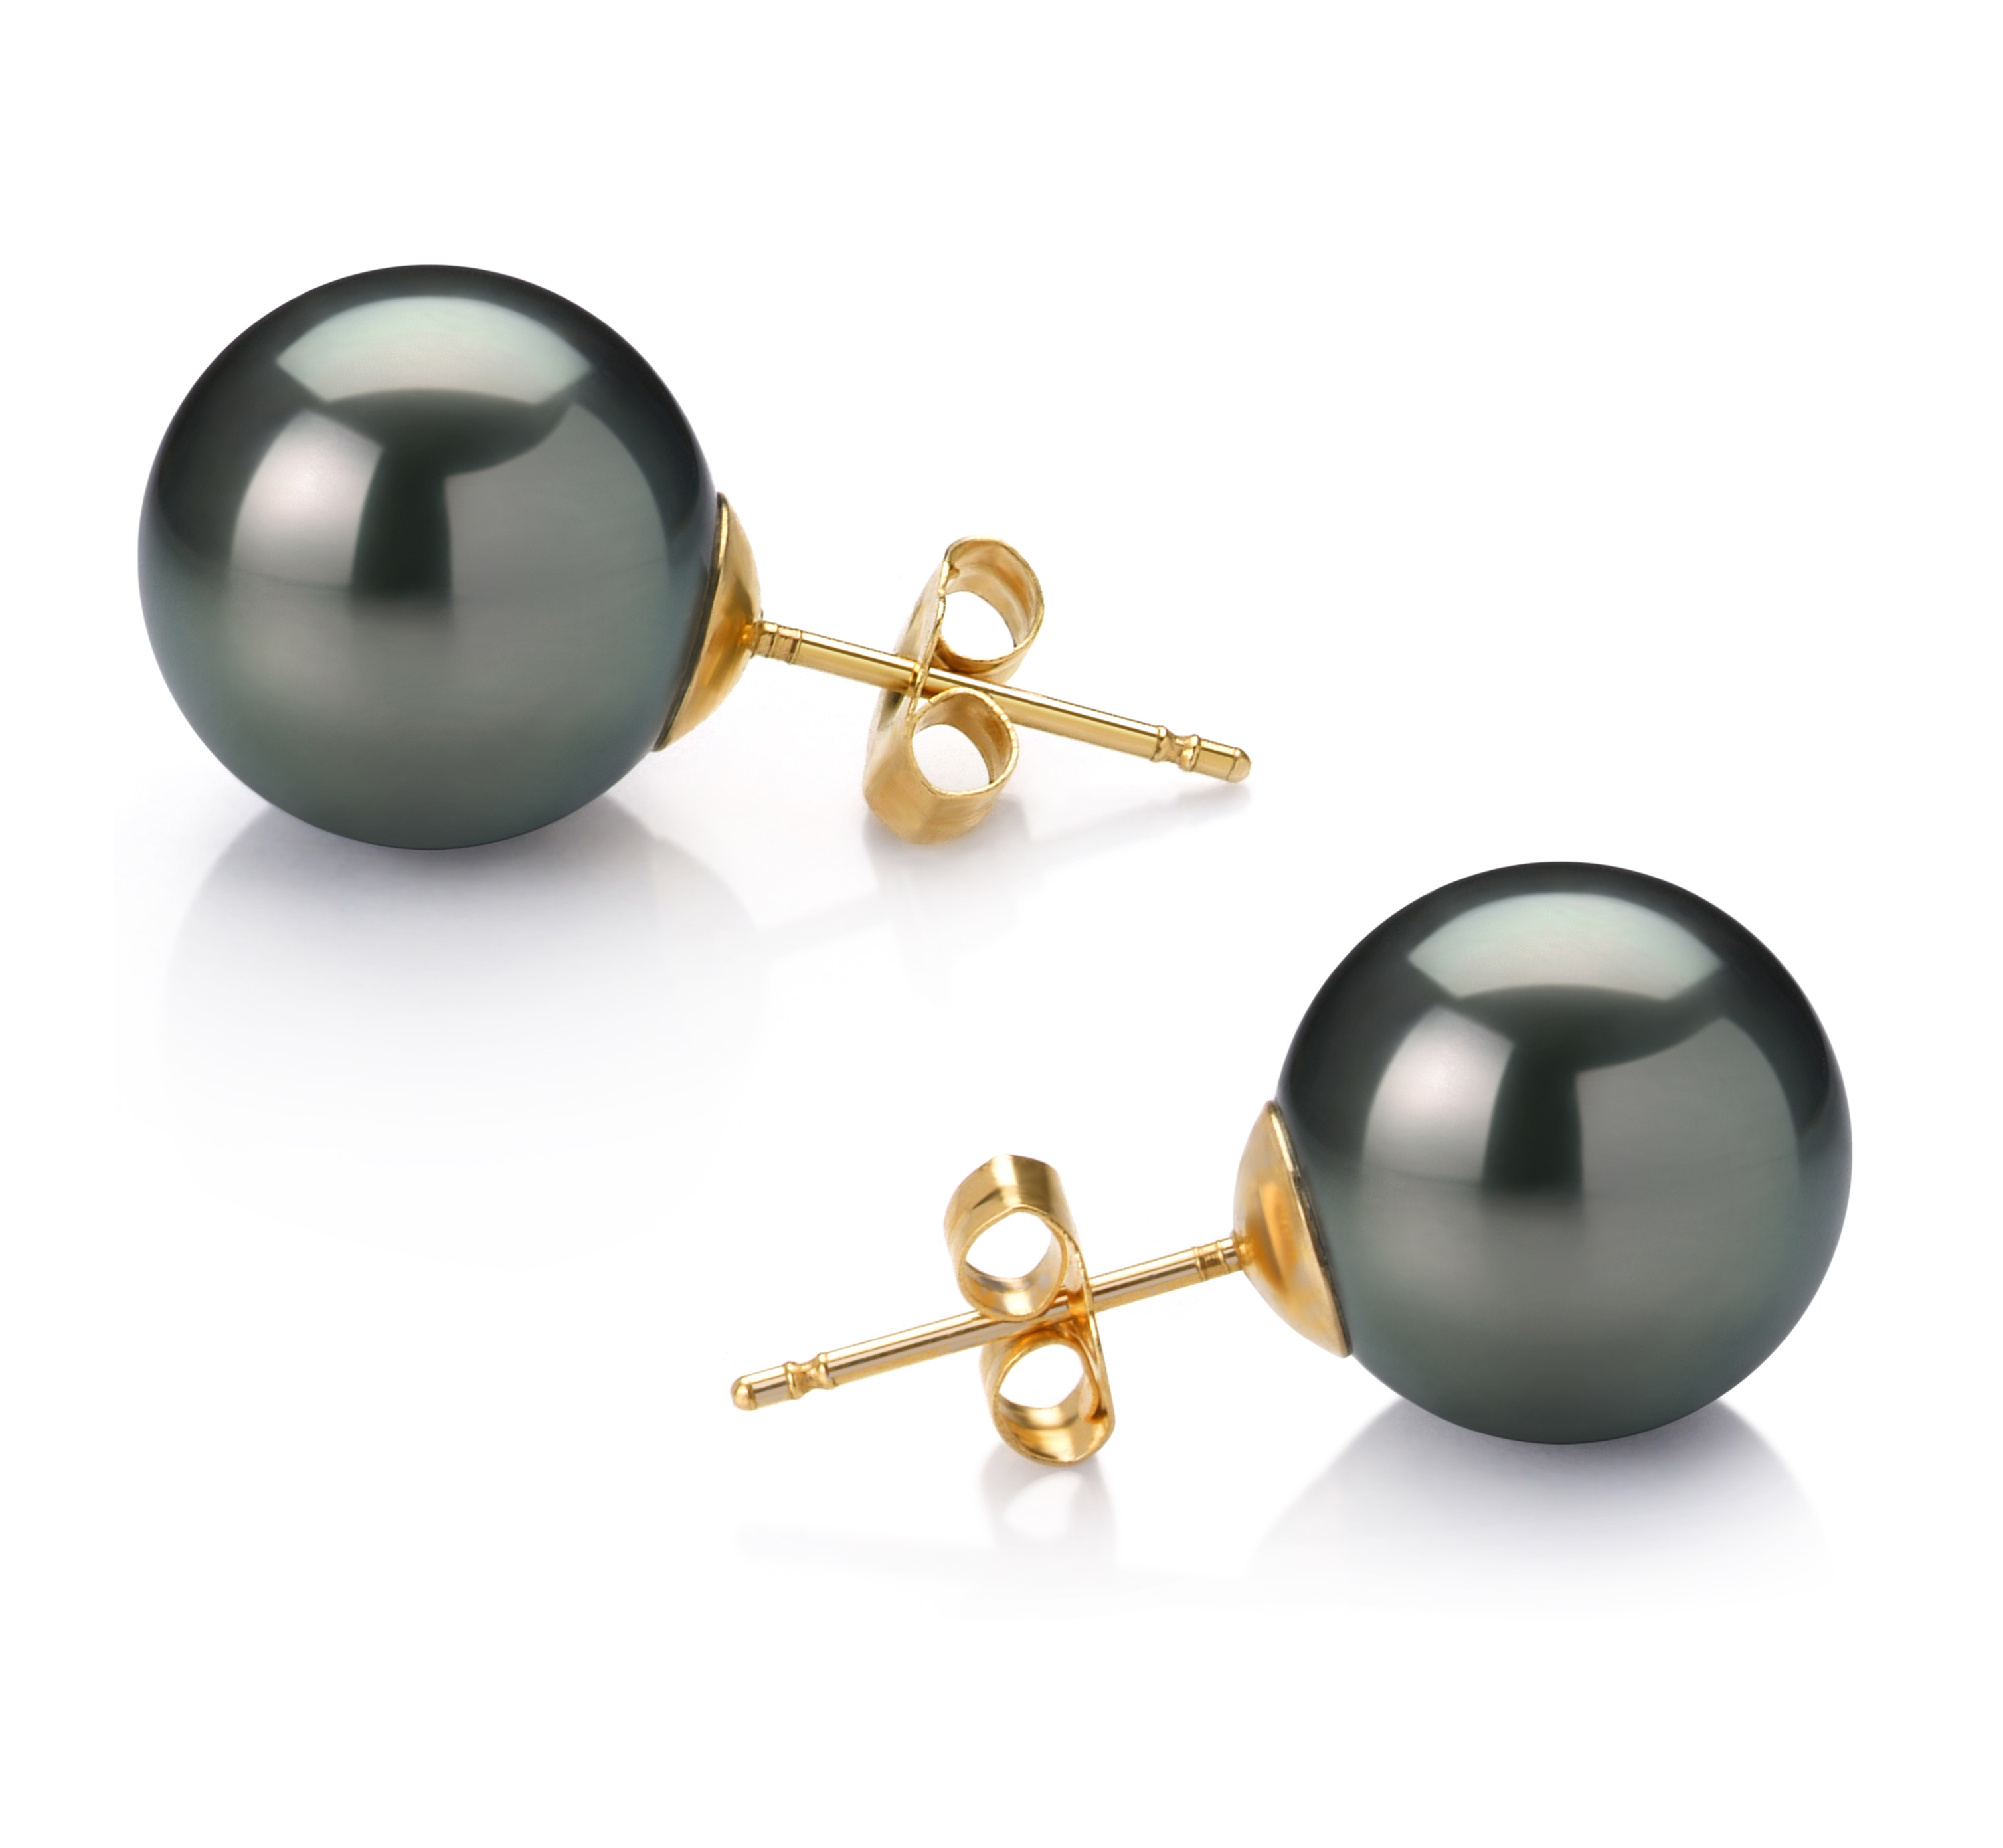 12-13mm AAA Quality Tahitian Cultured Pearl Earring Pair in Black